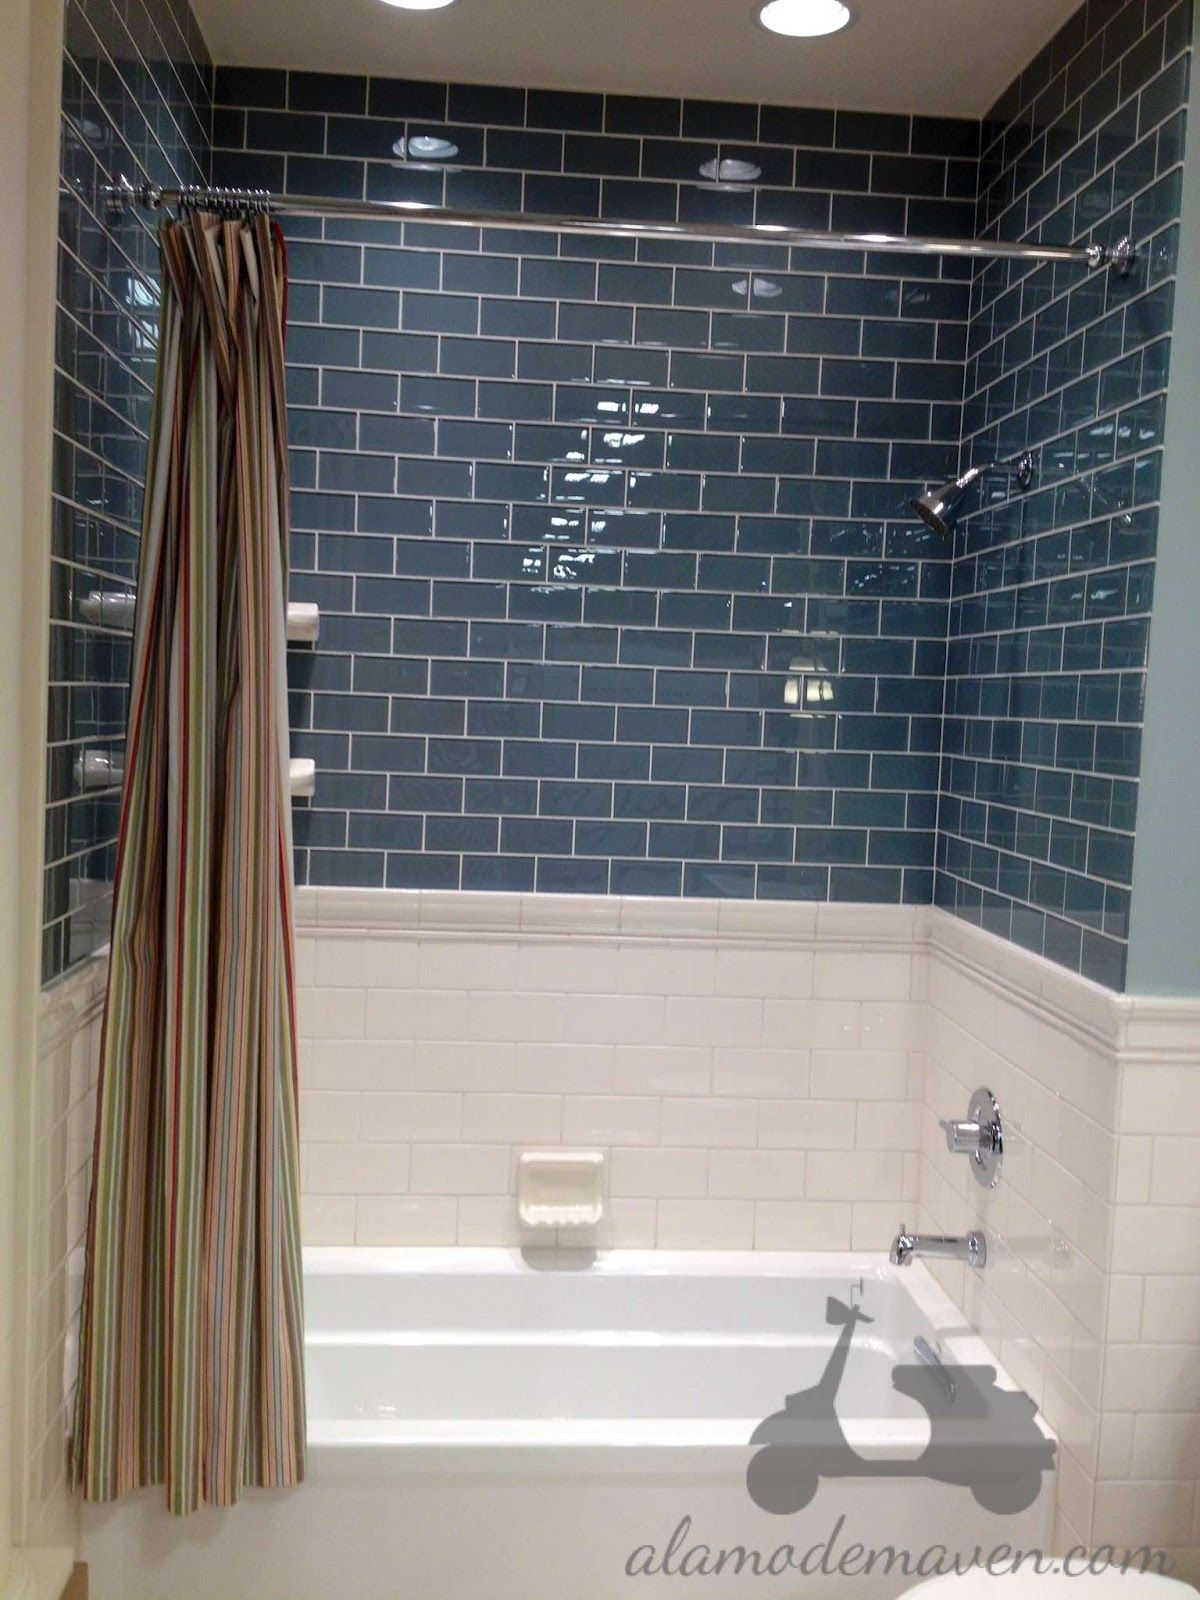 pictures Top 50 Best Subway Tile Shower Ideas – Bathroom Designs modern collection